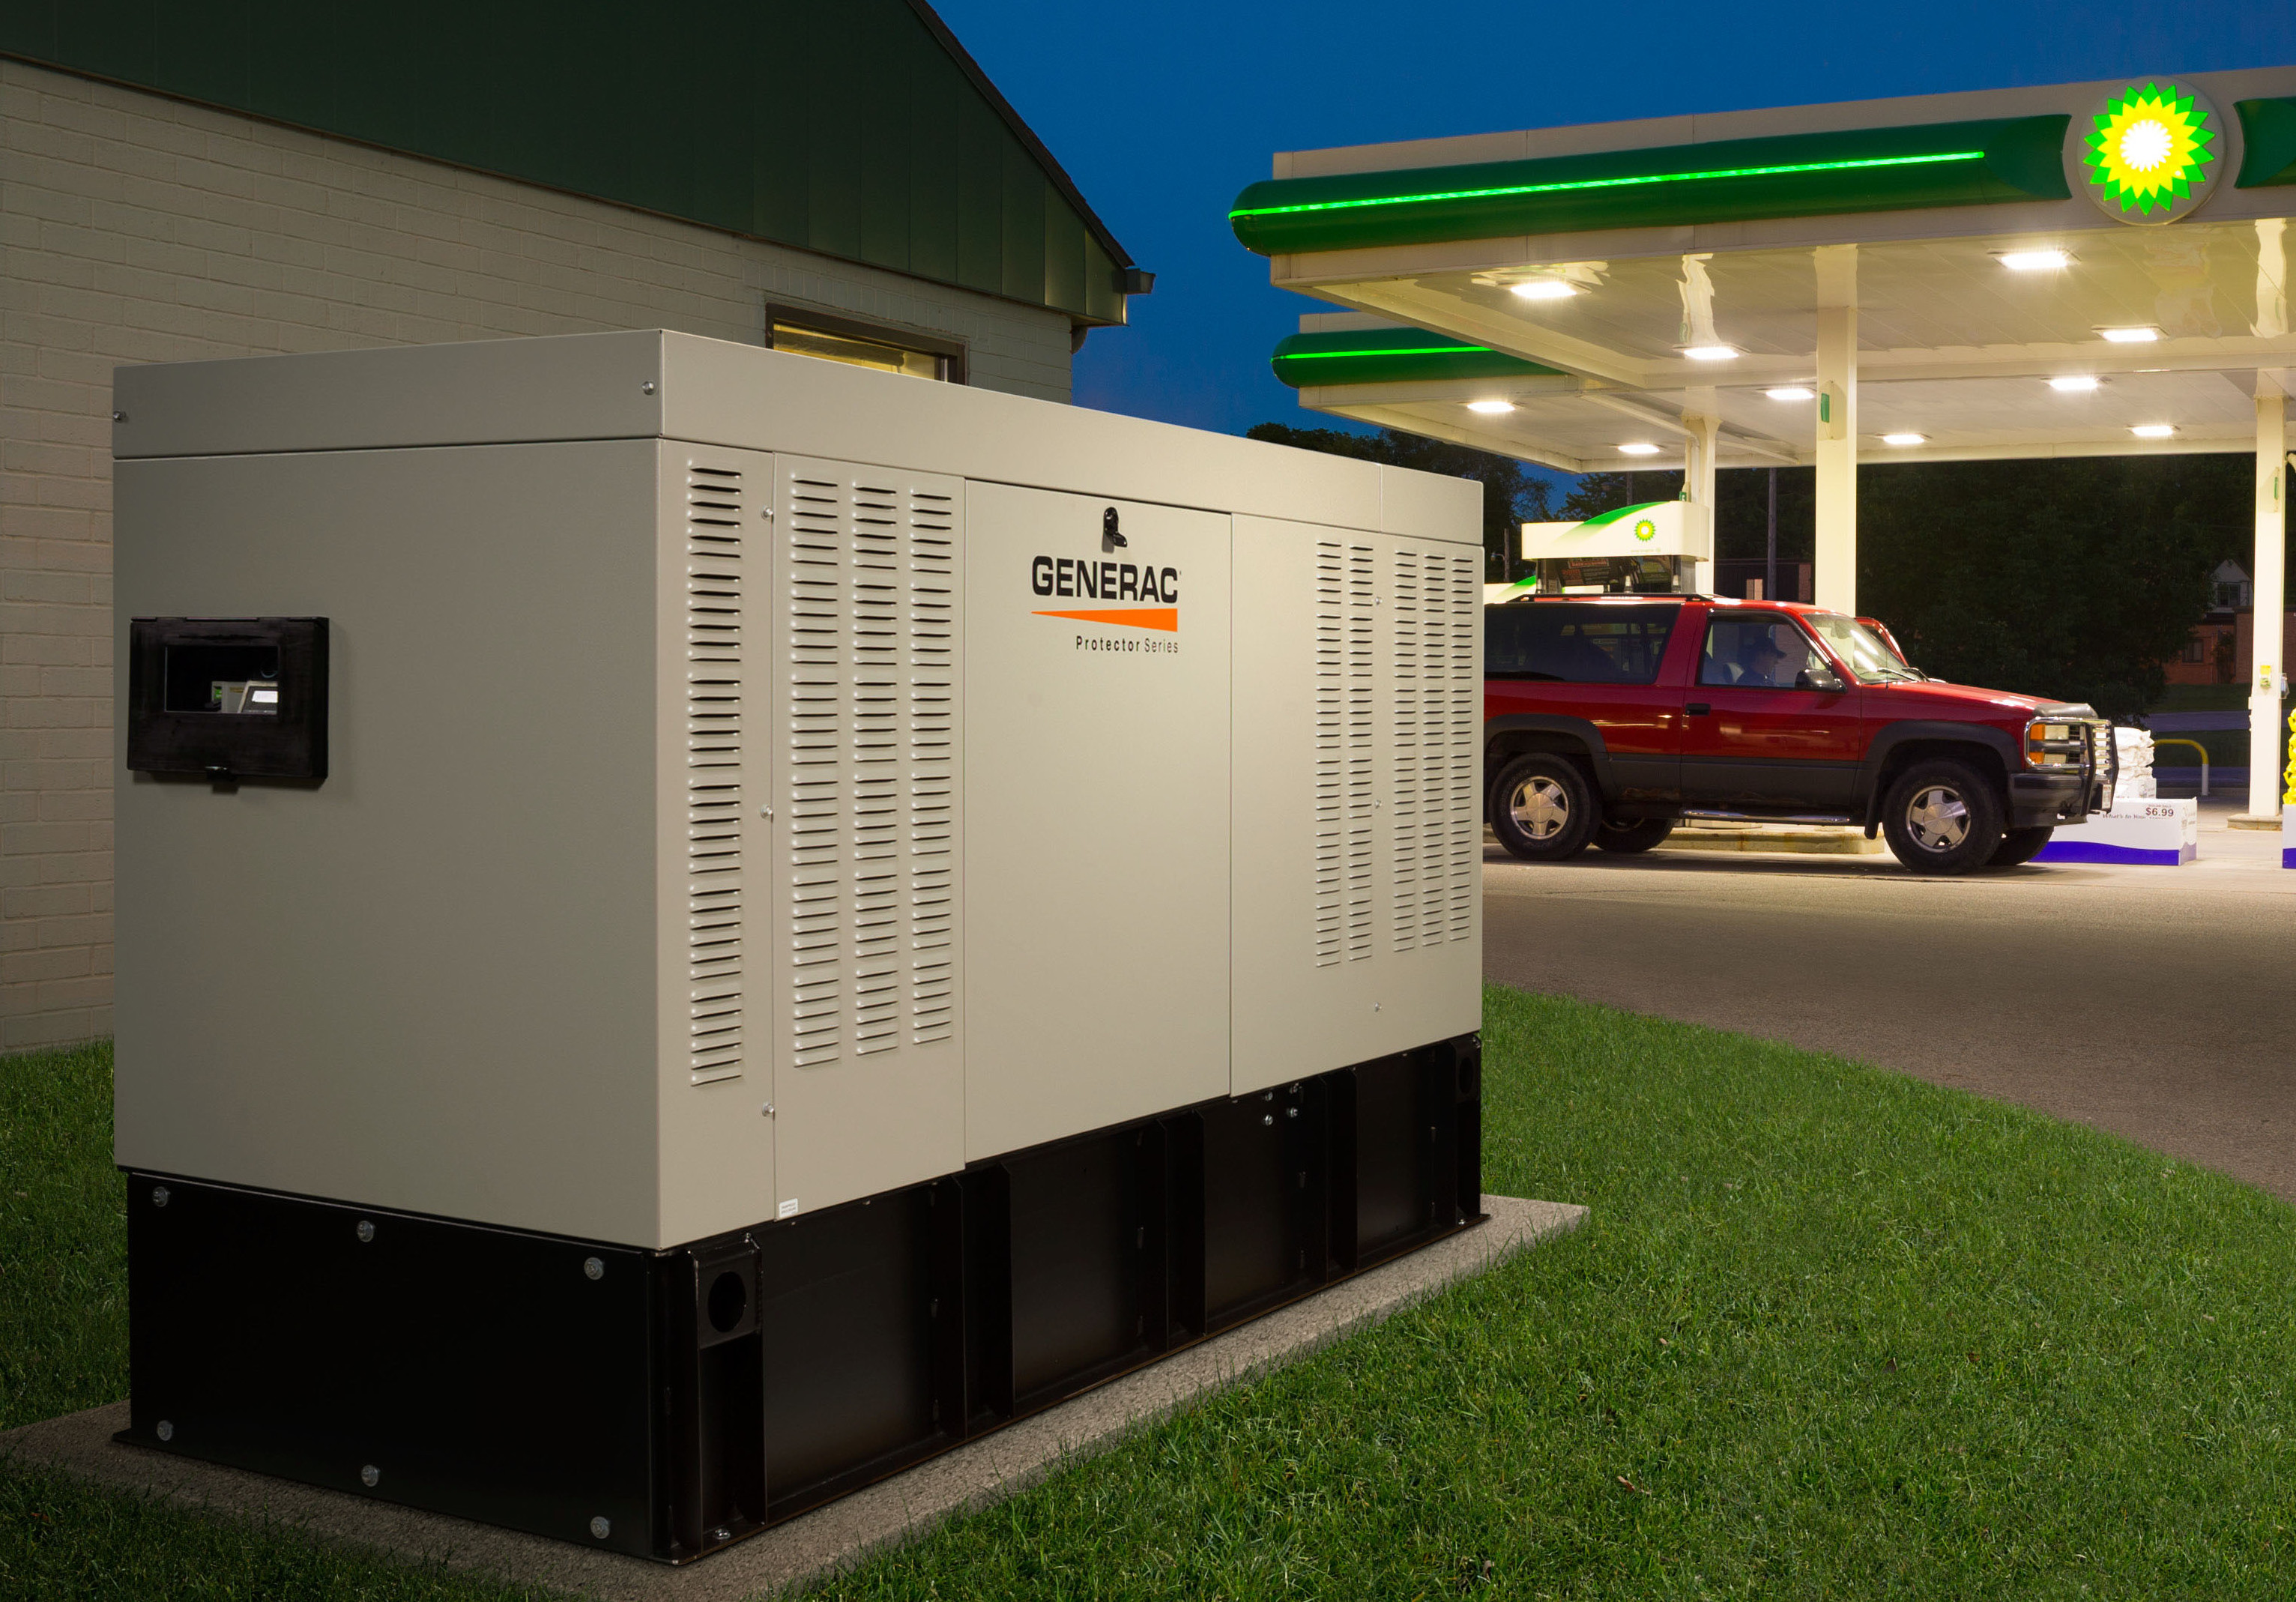 Generac mercial Diesel Standby Generator Wolter Power Systems